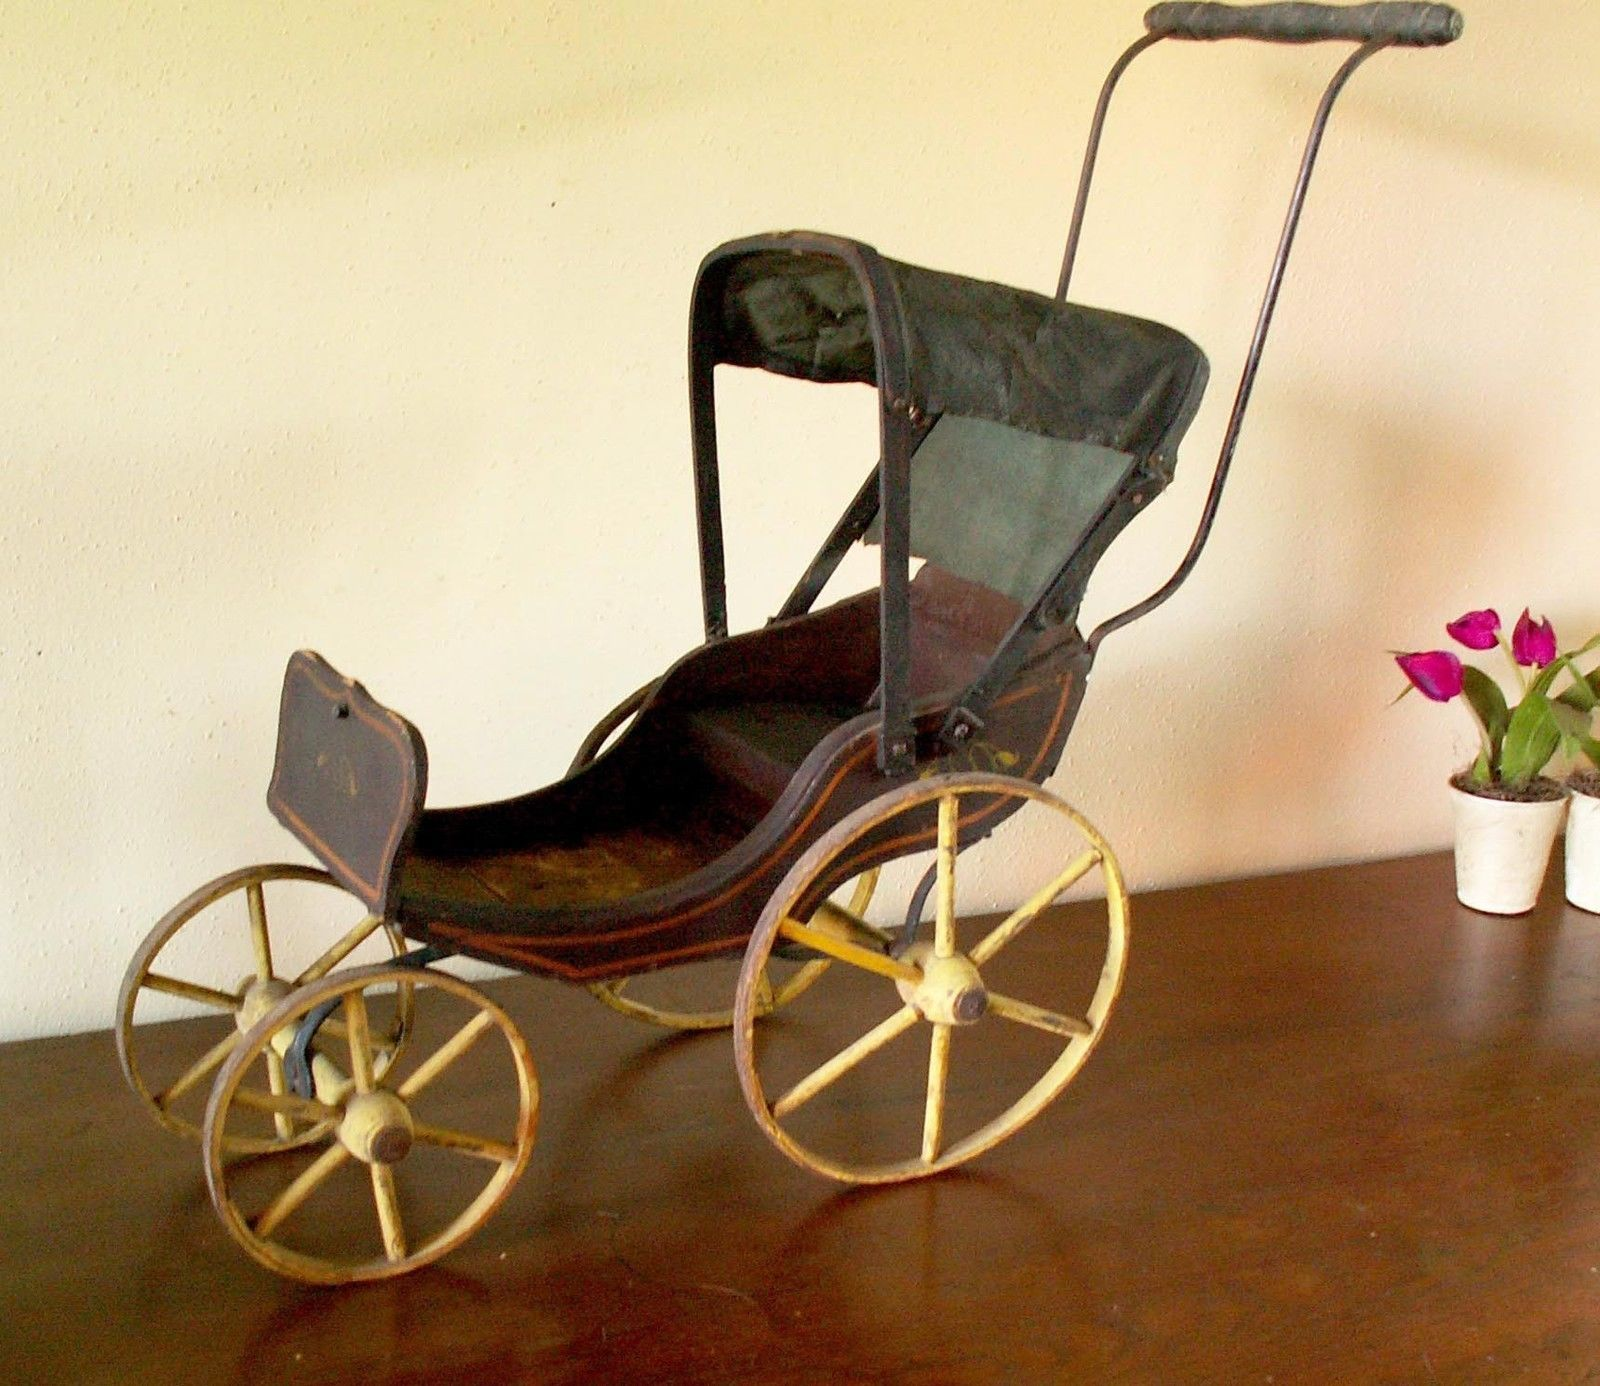 Antique Buggy Baby Doll Toy Carriage Stroller Paint Antiques Baby Carriages & Buggies